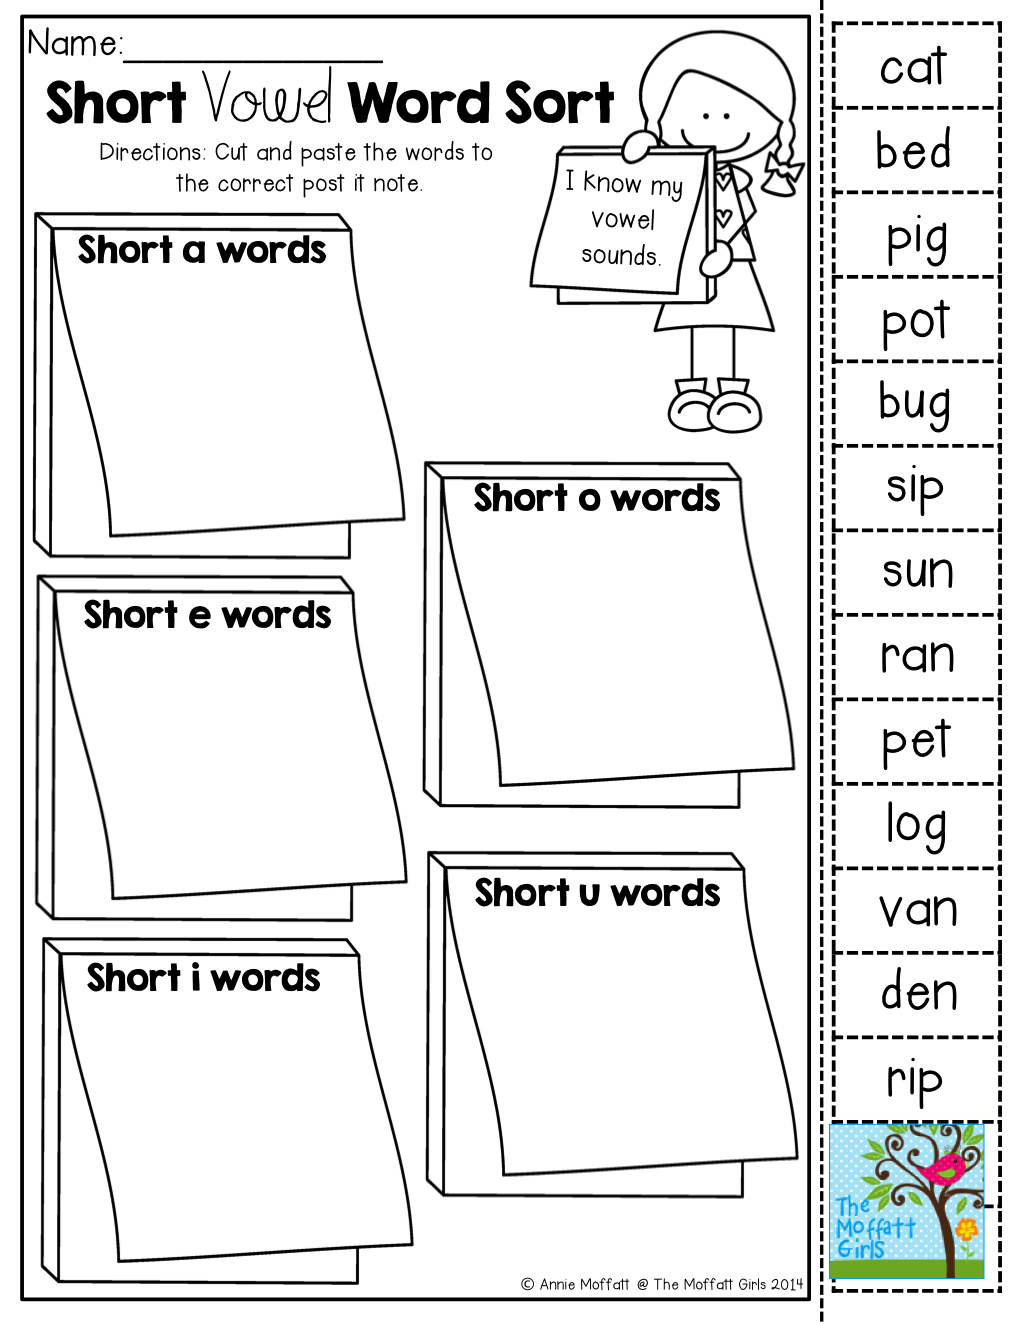 Workbooks sound energy worksheets : Short vowel word sort (cut and paste)! TONS of Back to School ...